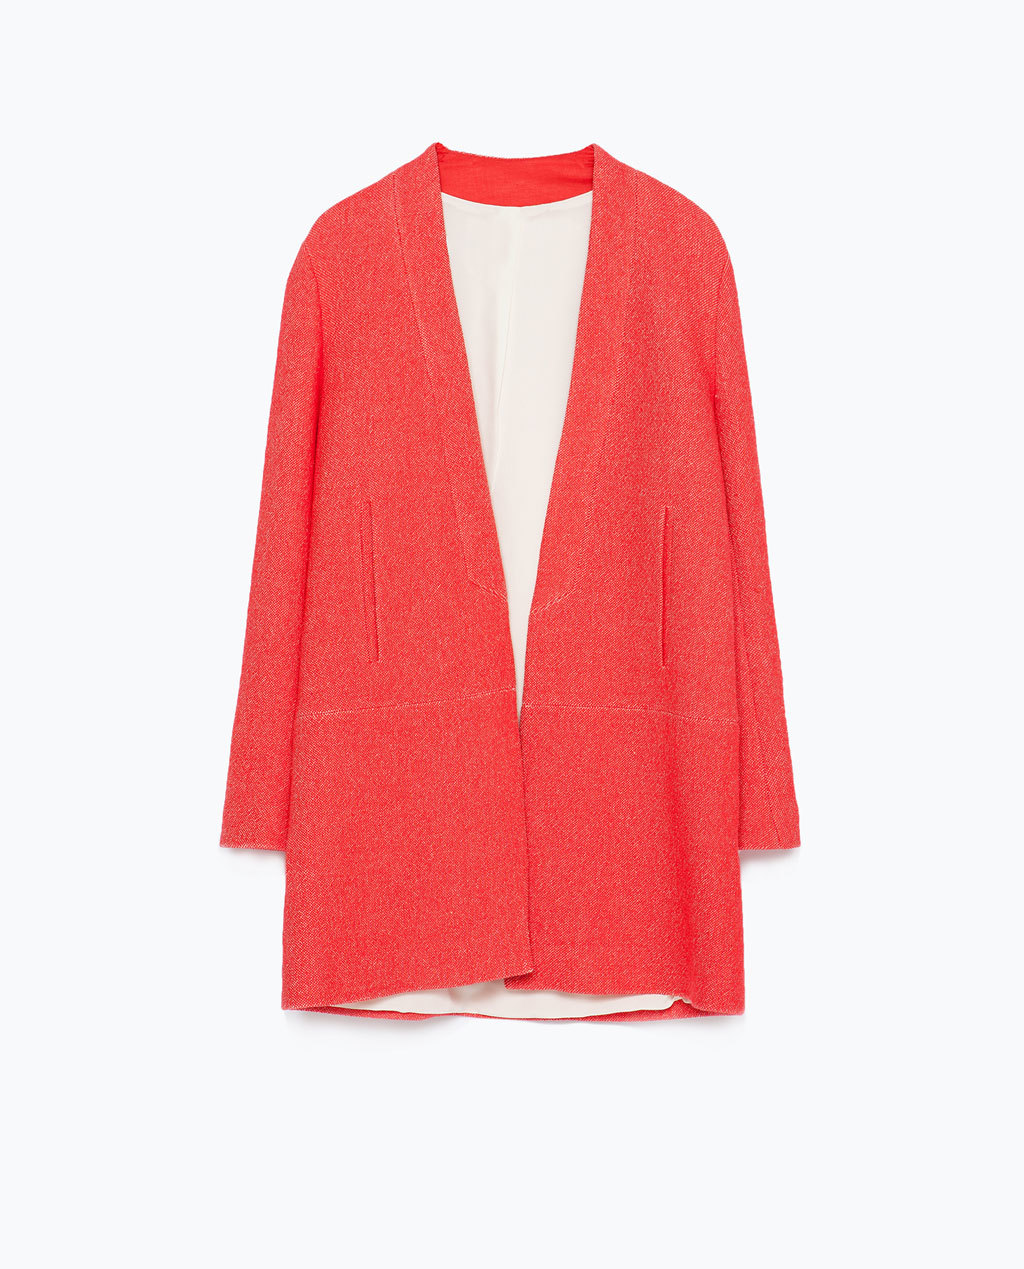 Coat - pattern: plain; collar: round collar/collarless; style: single breasted; length: mid thigh; predominant colour: bright orange; occasions: casual, creative work; fit: straight cut (boxy); fibres: linen - mix; sleeve length: long sleeve; sleeve style: standard; texture group: linen; collar break: low/open; pattern type: fabric; season: s/s 2015; wardrobe: highlight